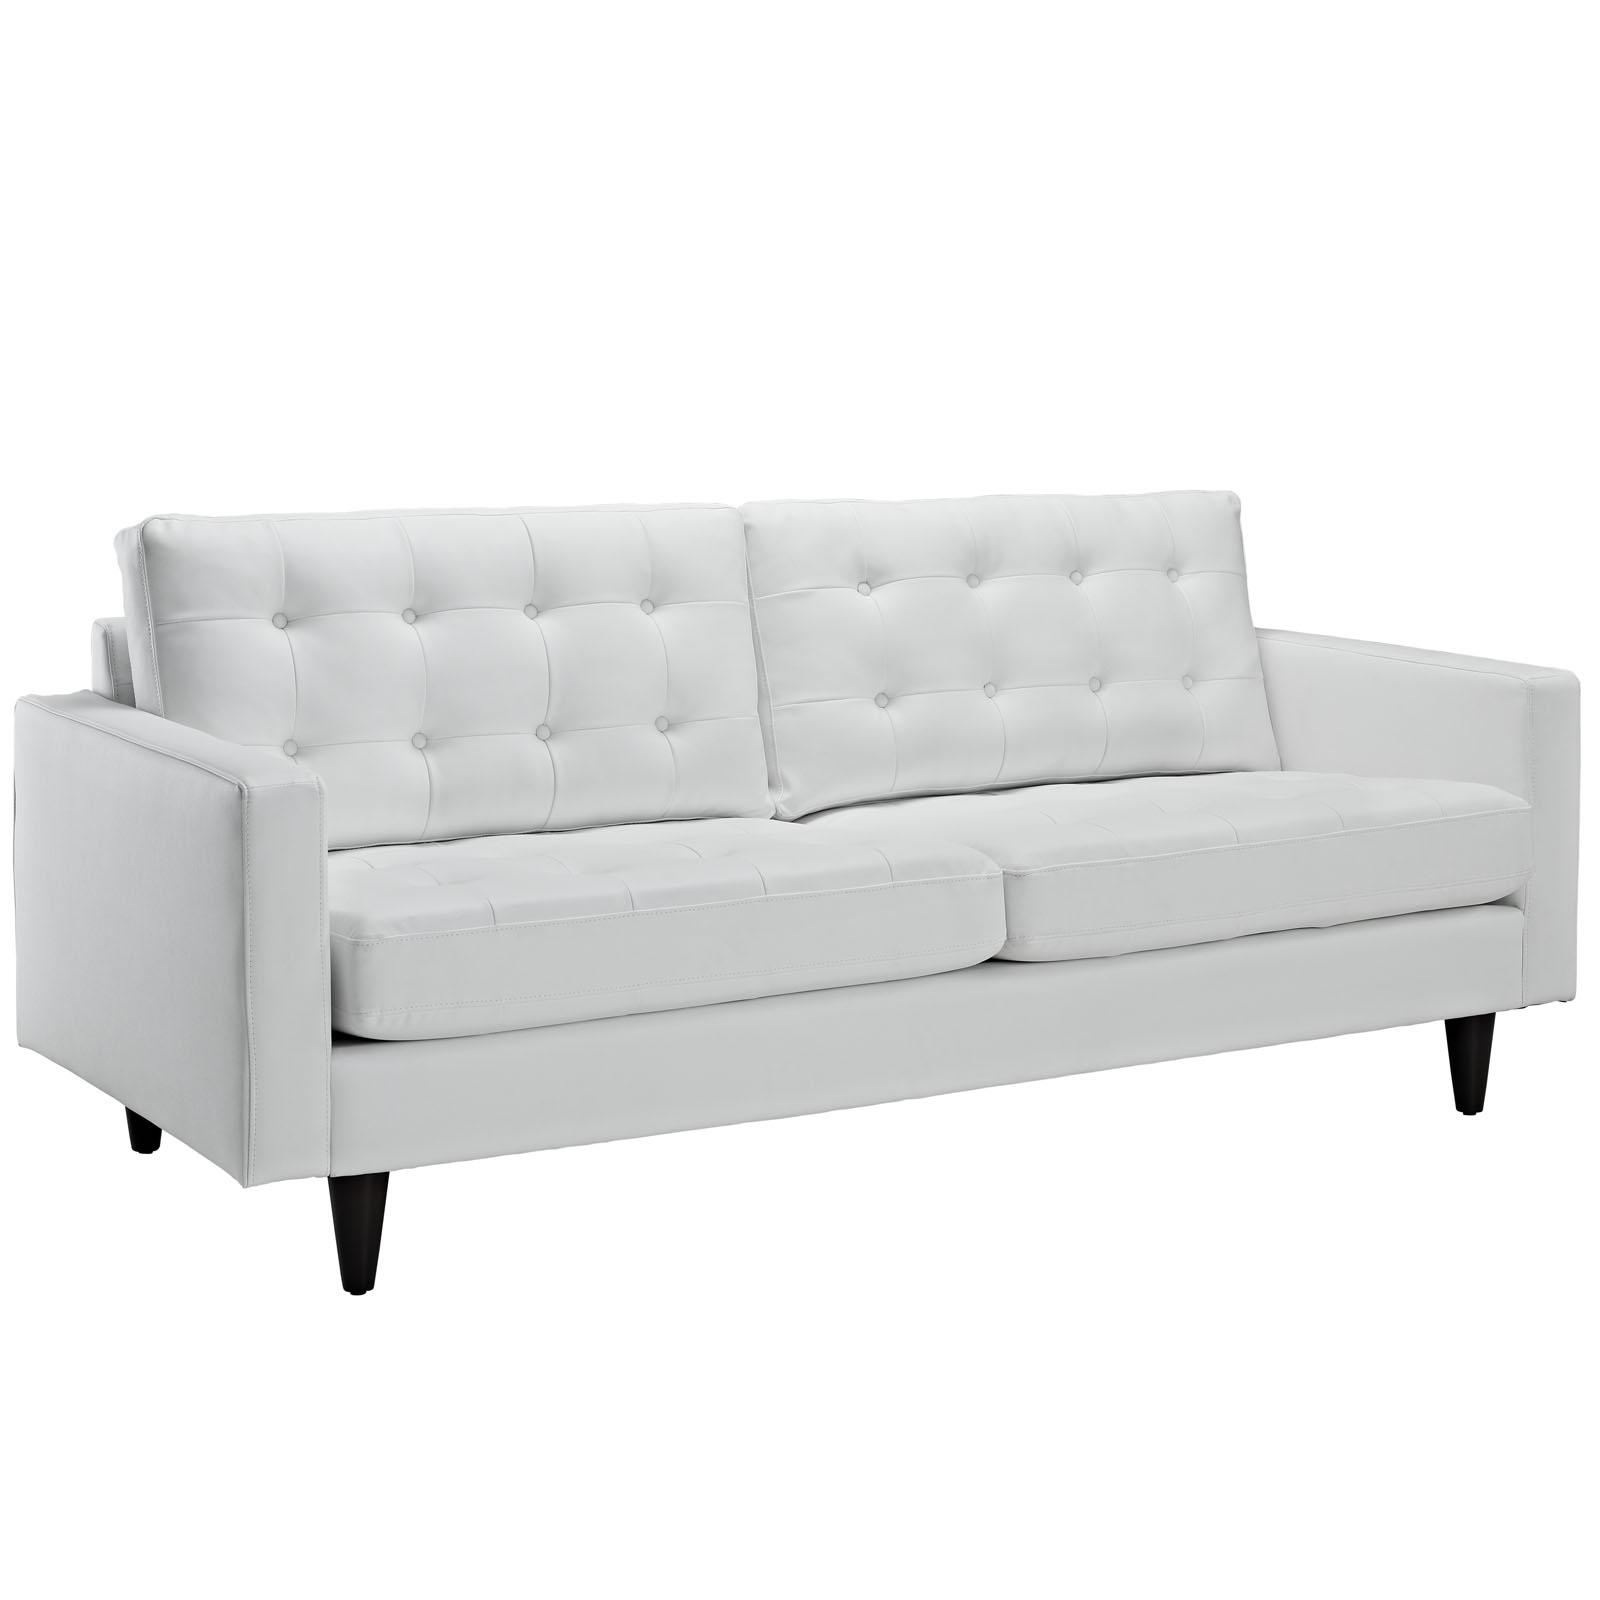 Sofas Center : White Sofa Chair Fabric Sofas Modern Contemporary Regarding White Sofa Chairs (View 5 of 20)